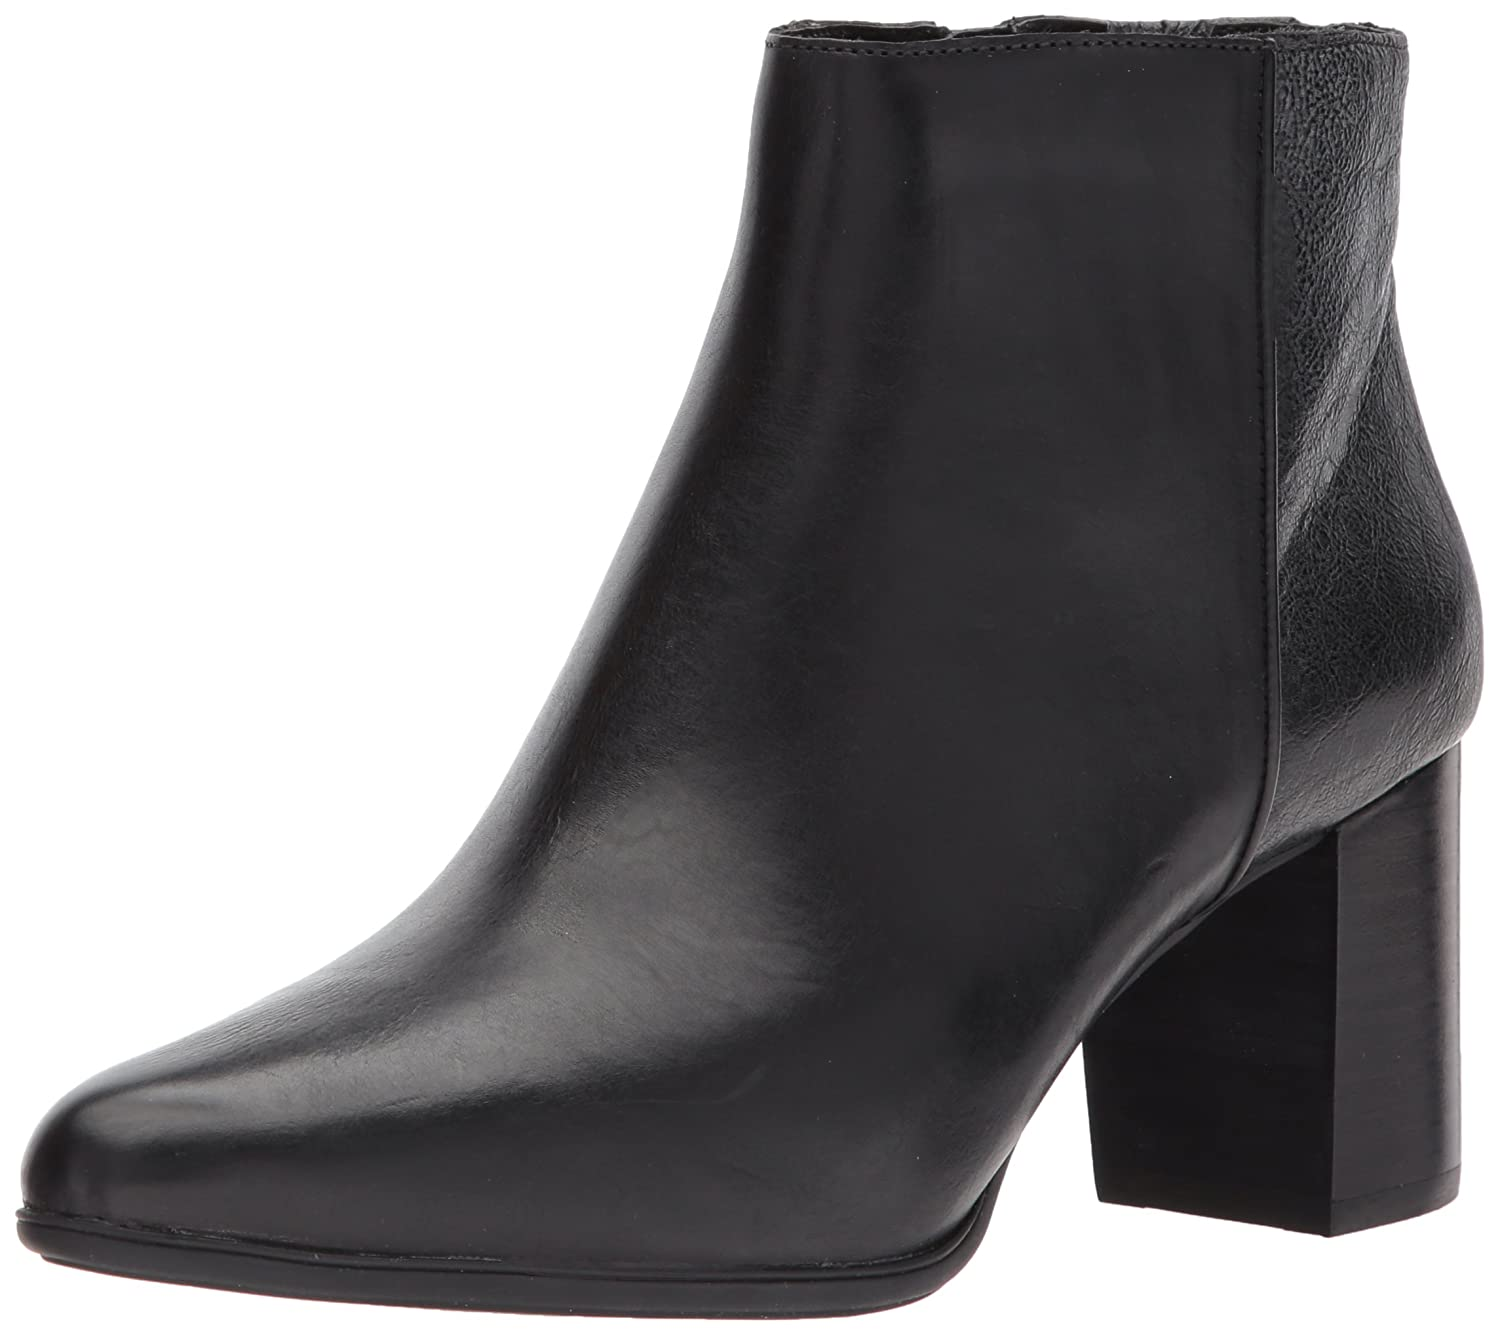 Rockport Women's Total Motion Lynix Bootie Boot B06W57KJ1Z 7 C/D US|Black